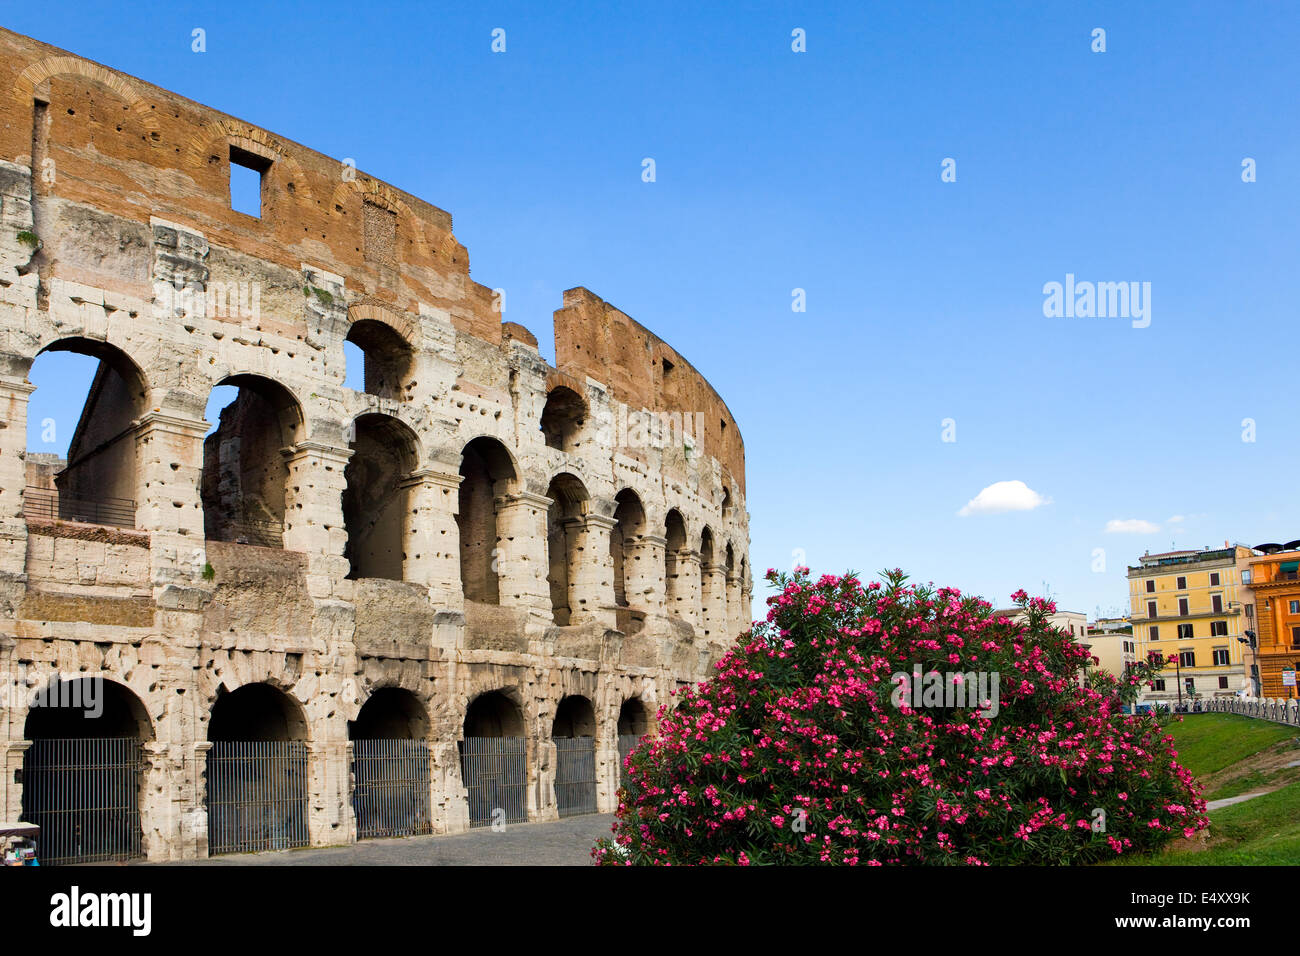 Italy. Rome. The ancient Collosseo - Stock Image